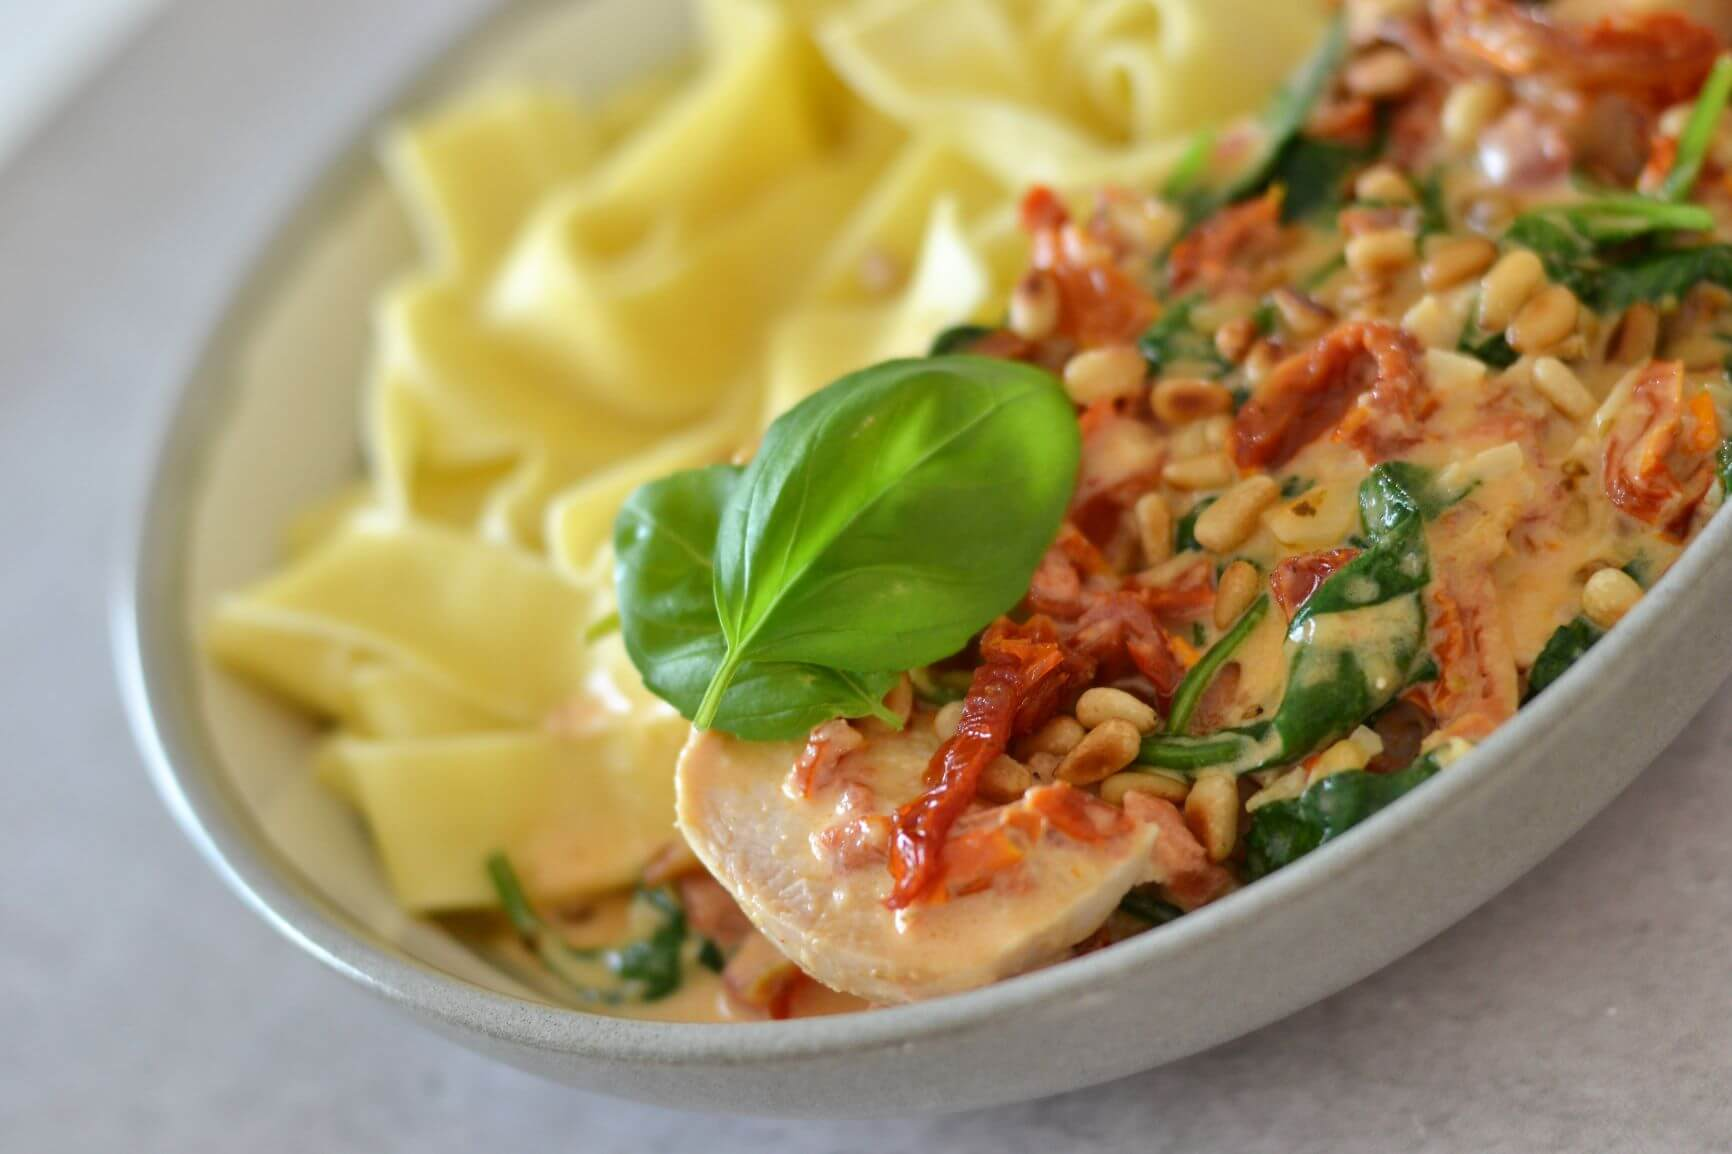 side view of bowl containing chicken, pasta and fresh green herbs